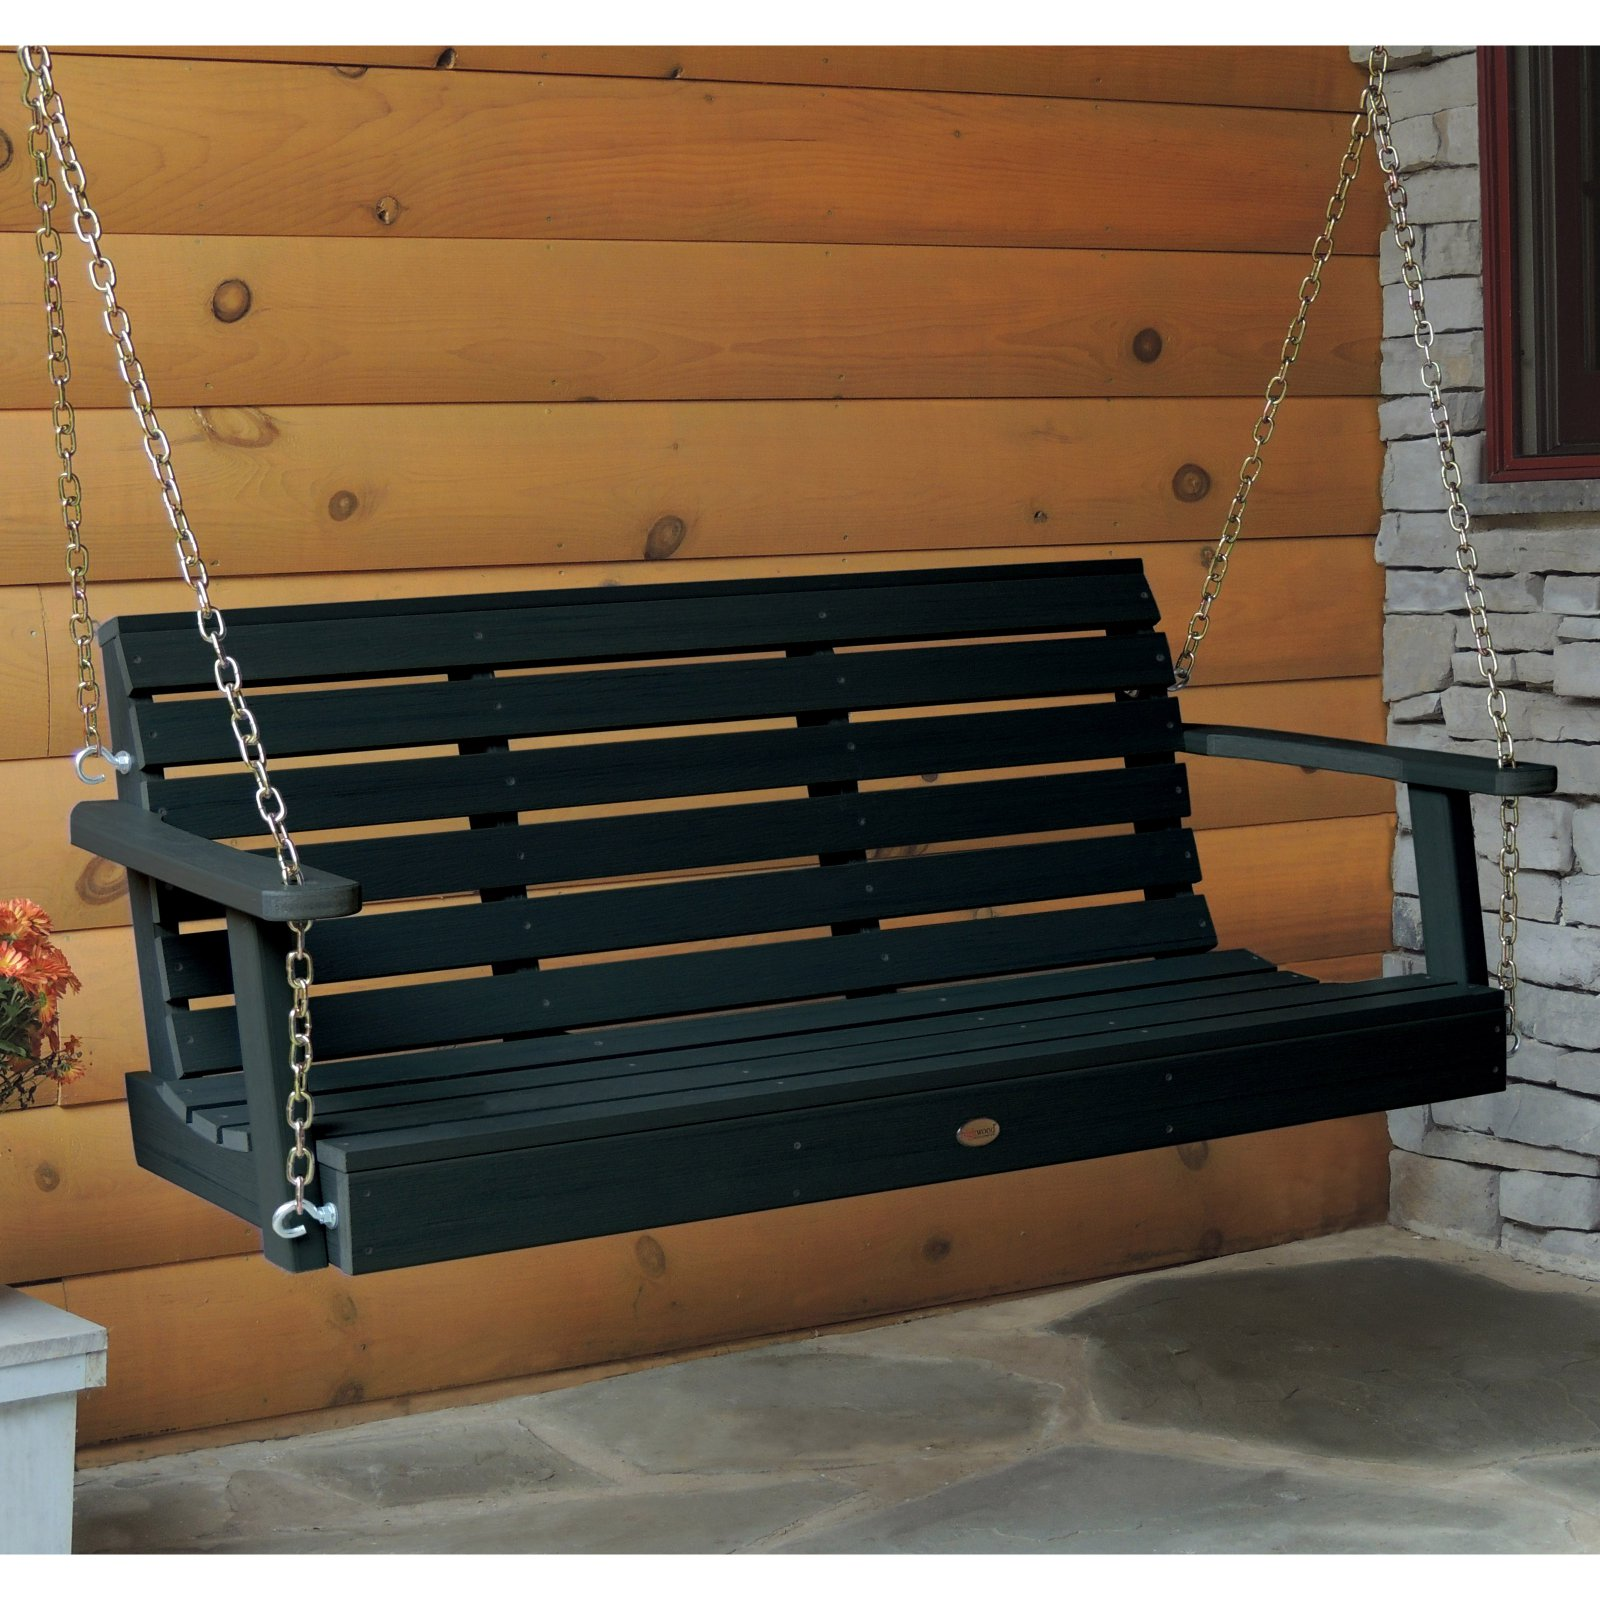 highwood Weatherly Recycled Plastic Porch Swing by Porch Swings